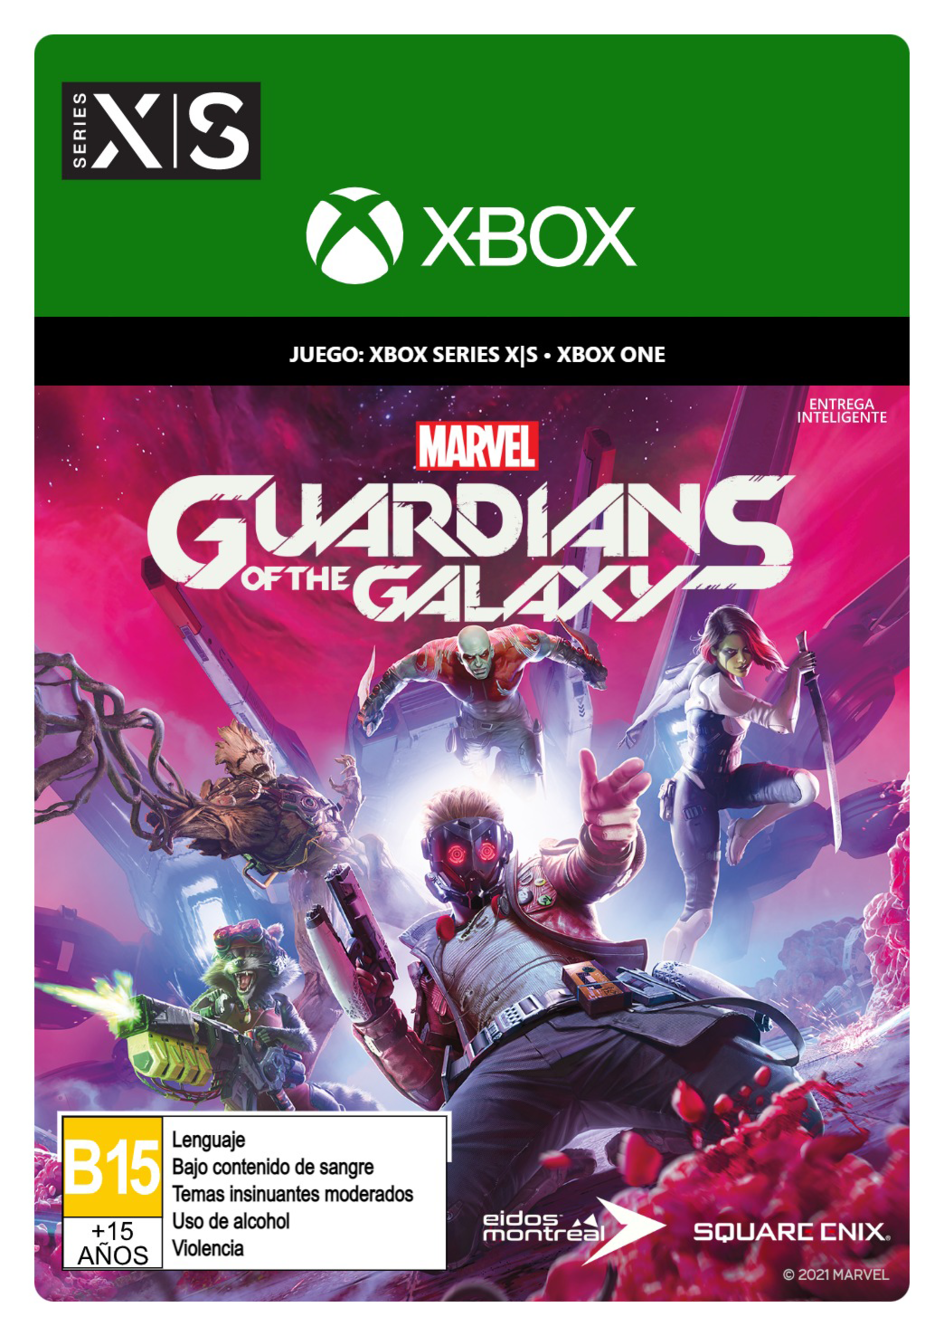 XBOX Marvel s Guardians of the Galaxy - Microsoft Xbox Series X - Microsoft Xbox Series S - Download